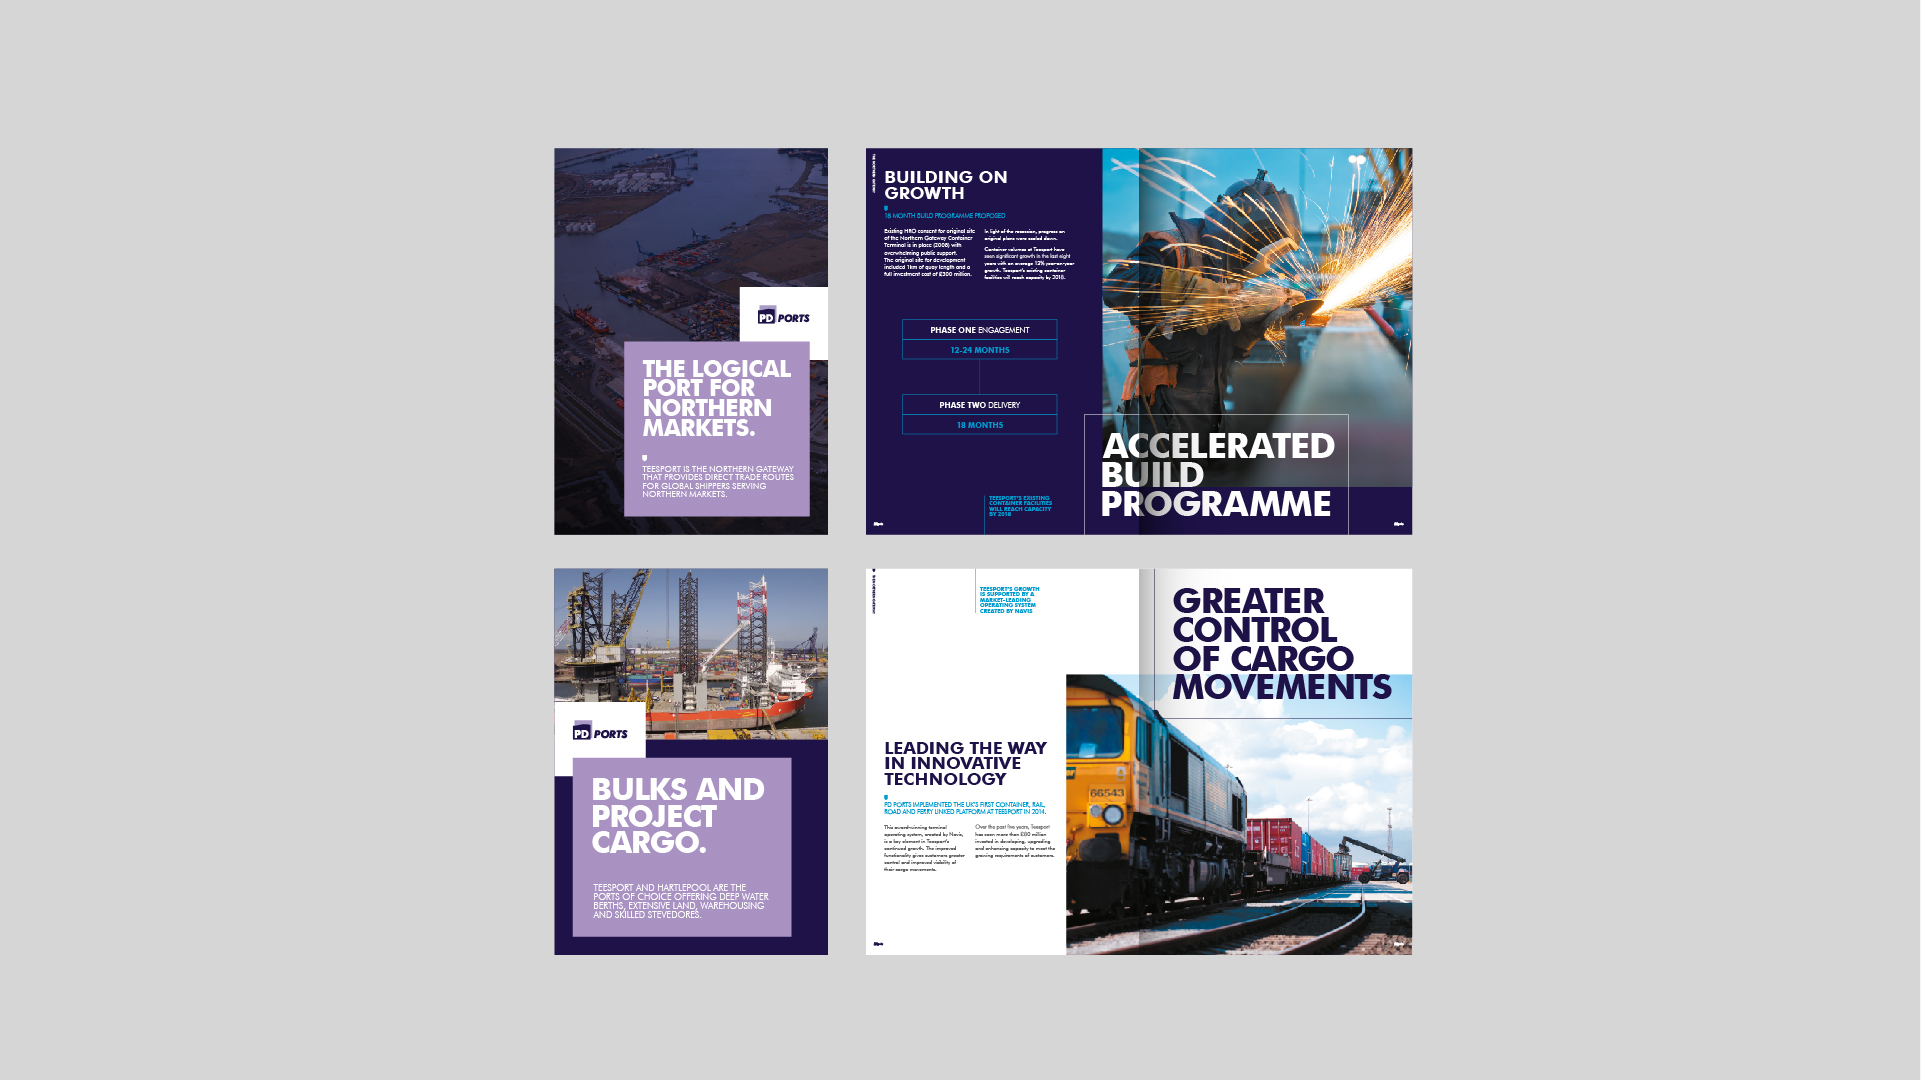 PD Ports - BetterBrandBuilder™ DELIVER - Brochure Layouts